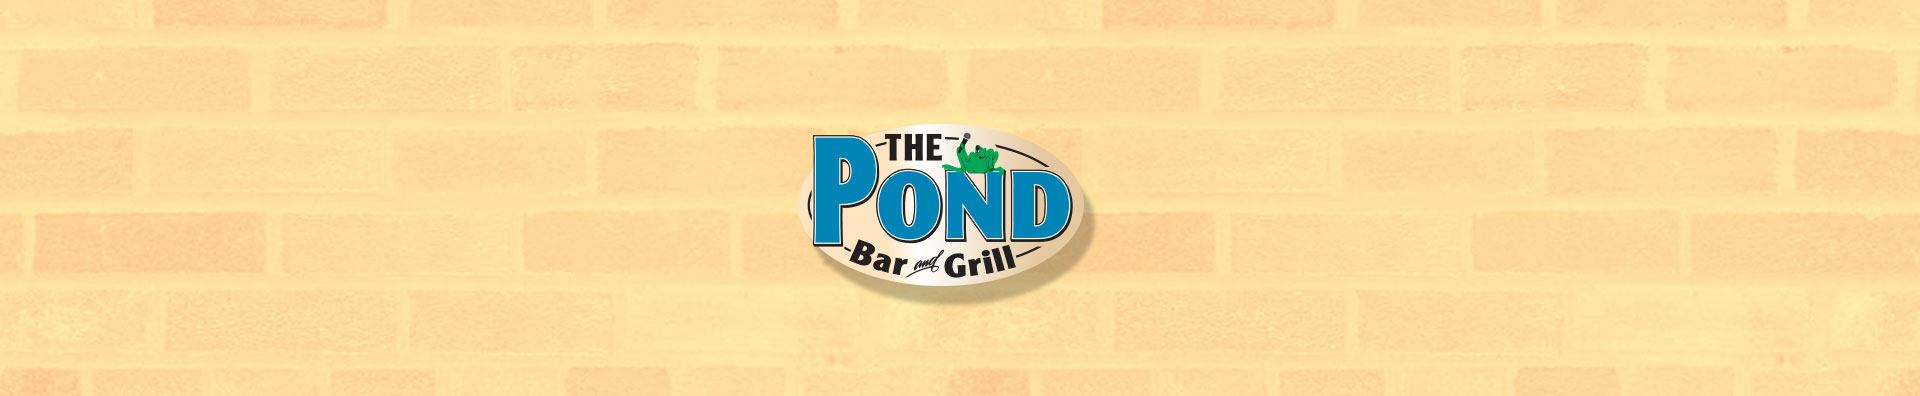 The Pond Bar and Grill